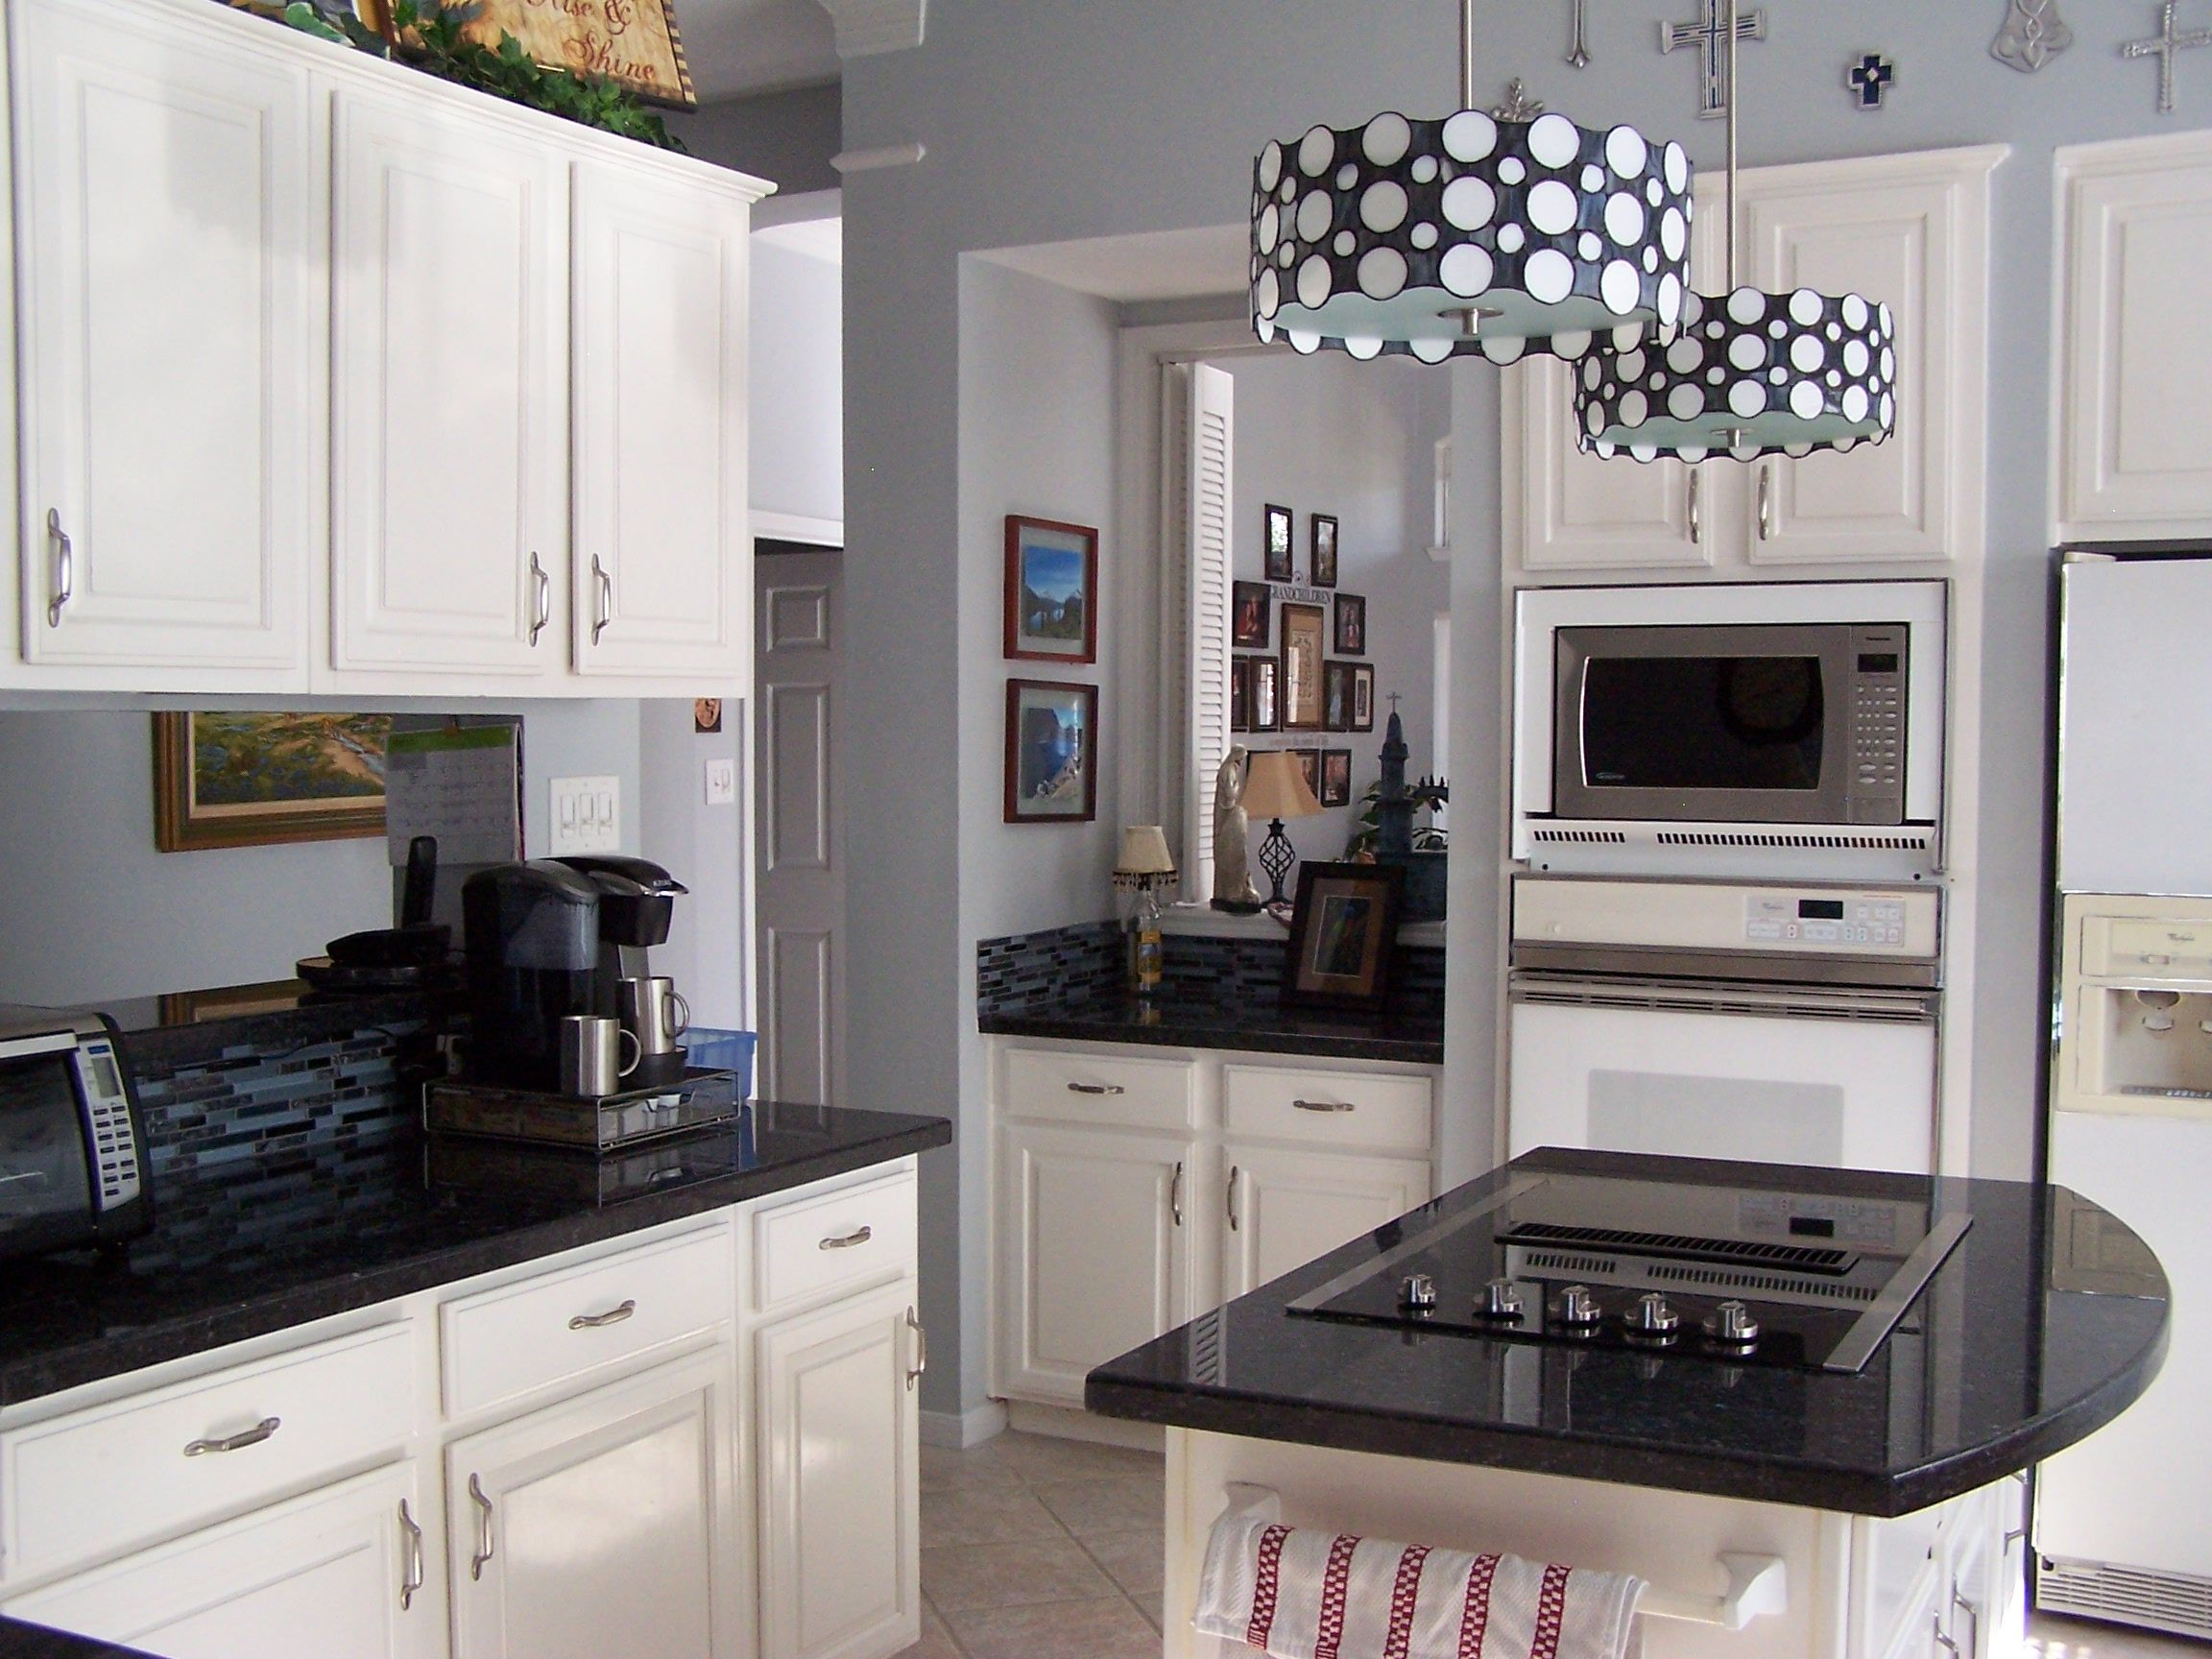 Enlarged Island New Cooktop With Blue Pearl Granite Blue Pearl Granite Blue Granite Countertops Granite Kitchen